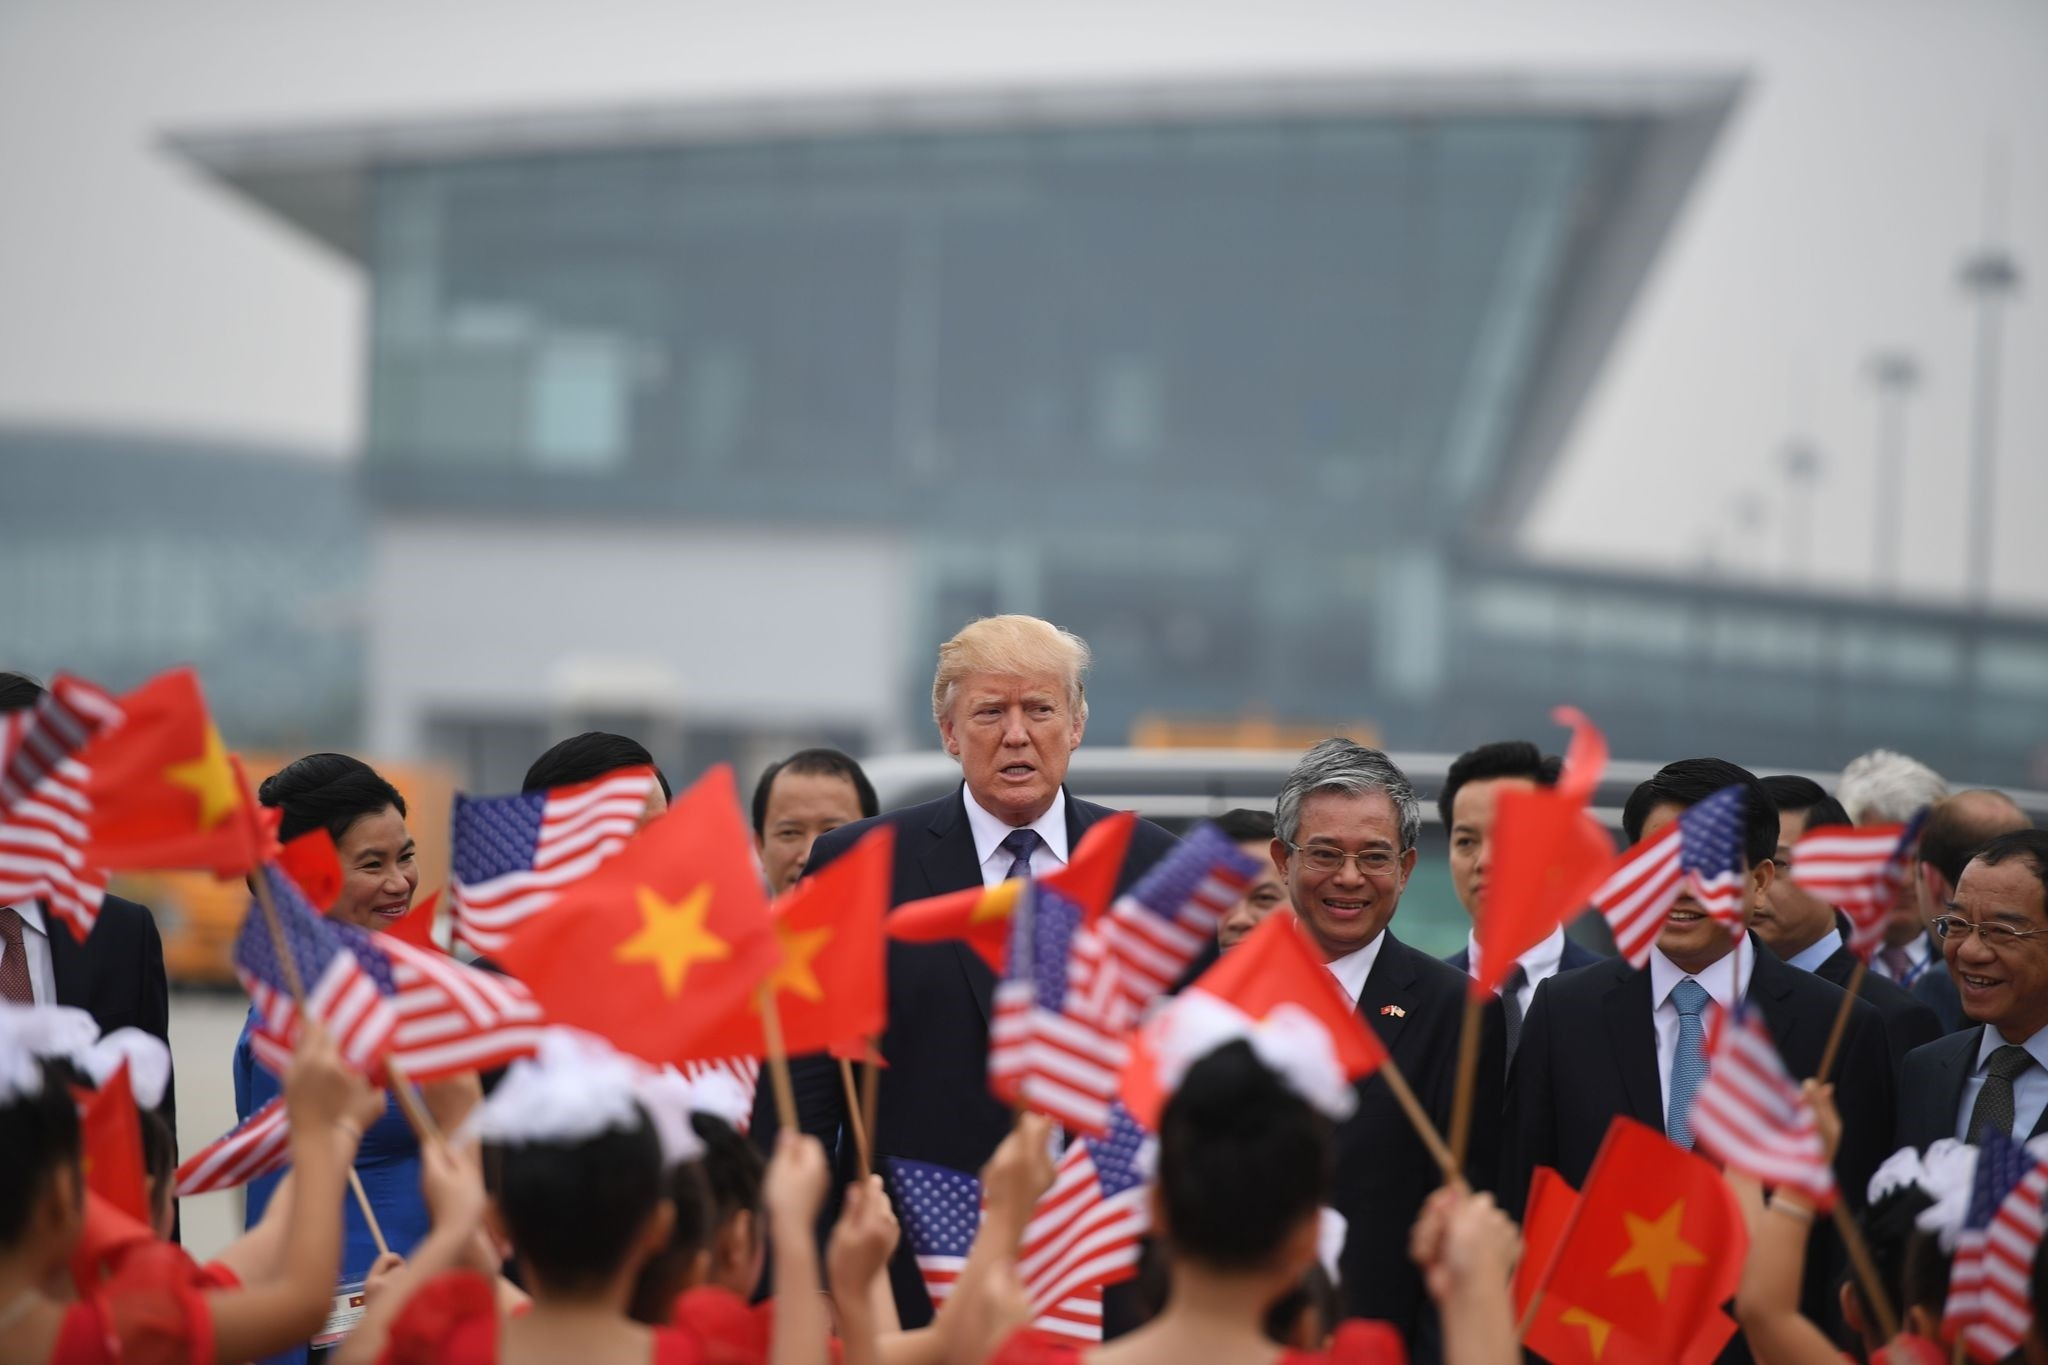 President Donald Trump watches as young girls wave U.S. and Vietnamese national flags before boarding Air Force One to depart to the Philippines, at the airport in Hanoi, Vietnam, Nov. 12.